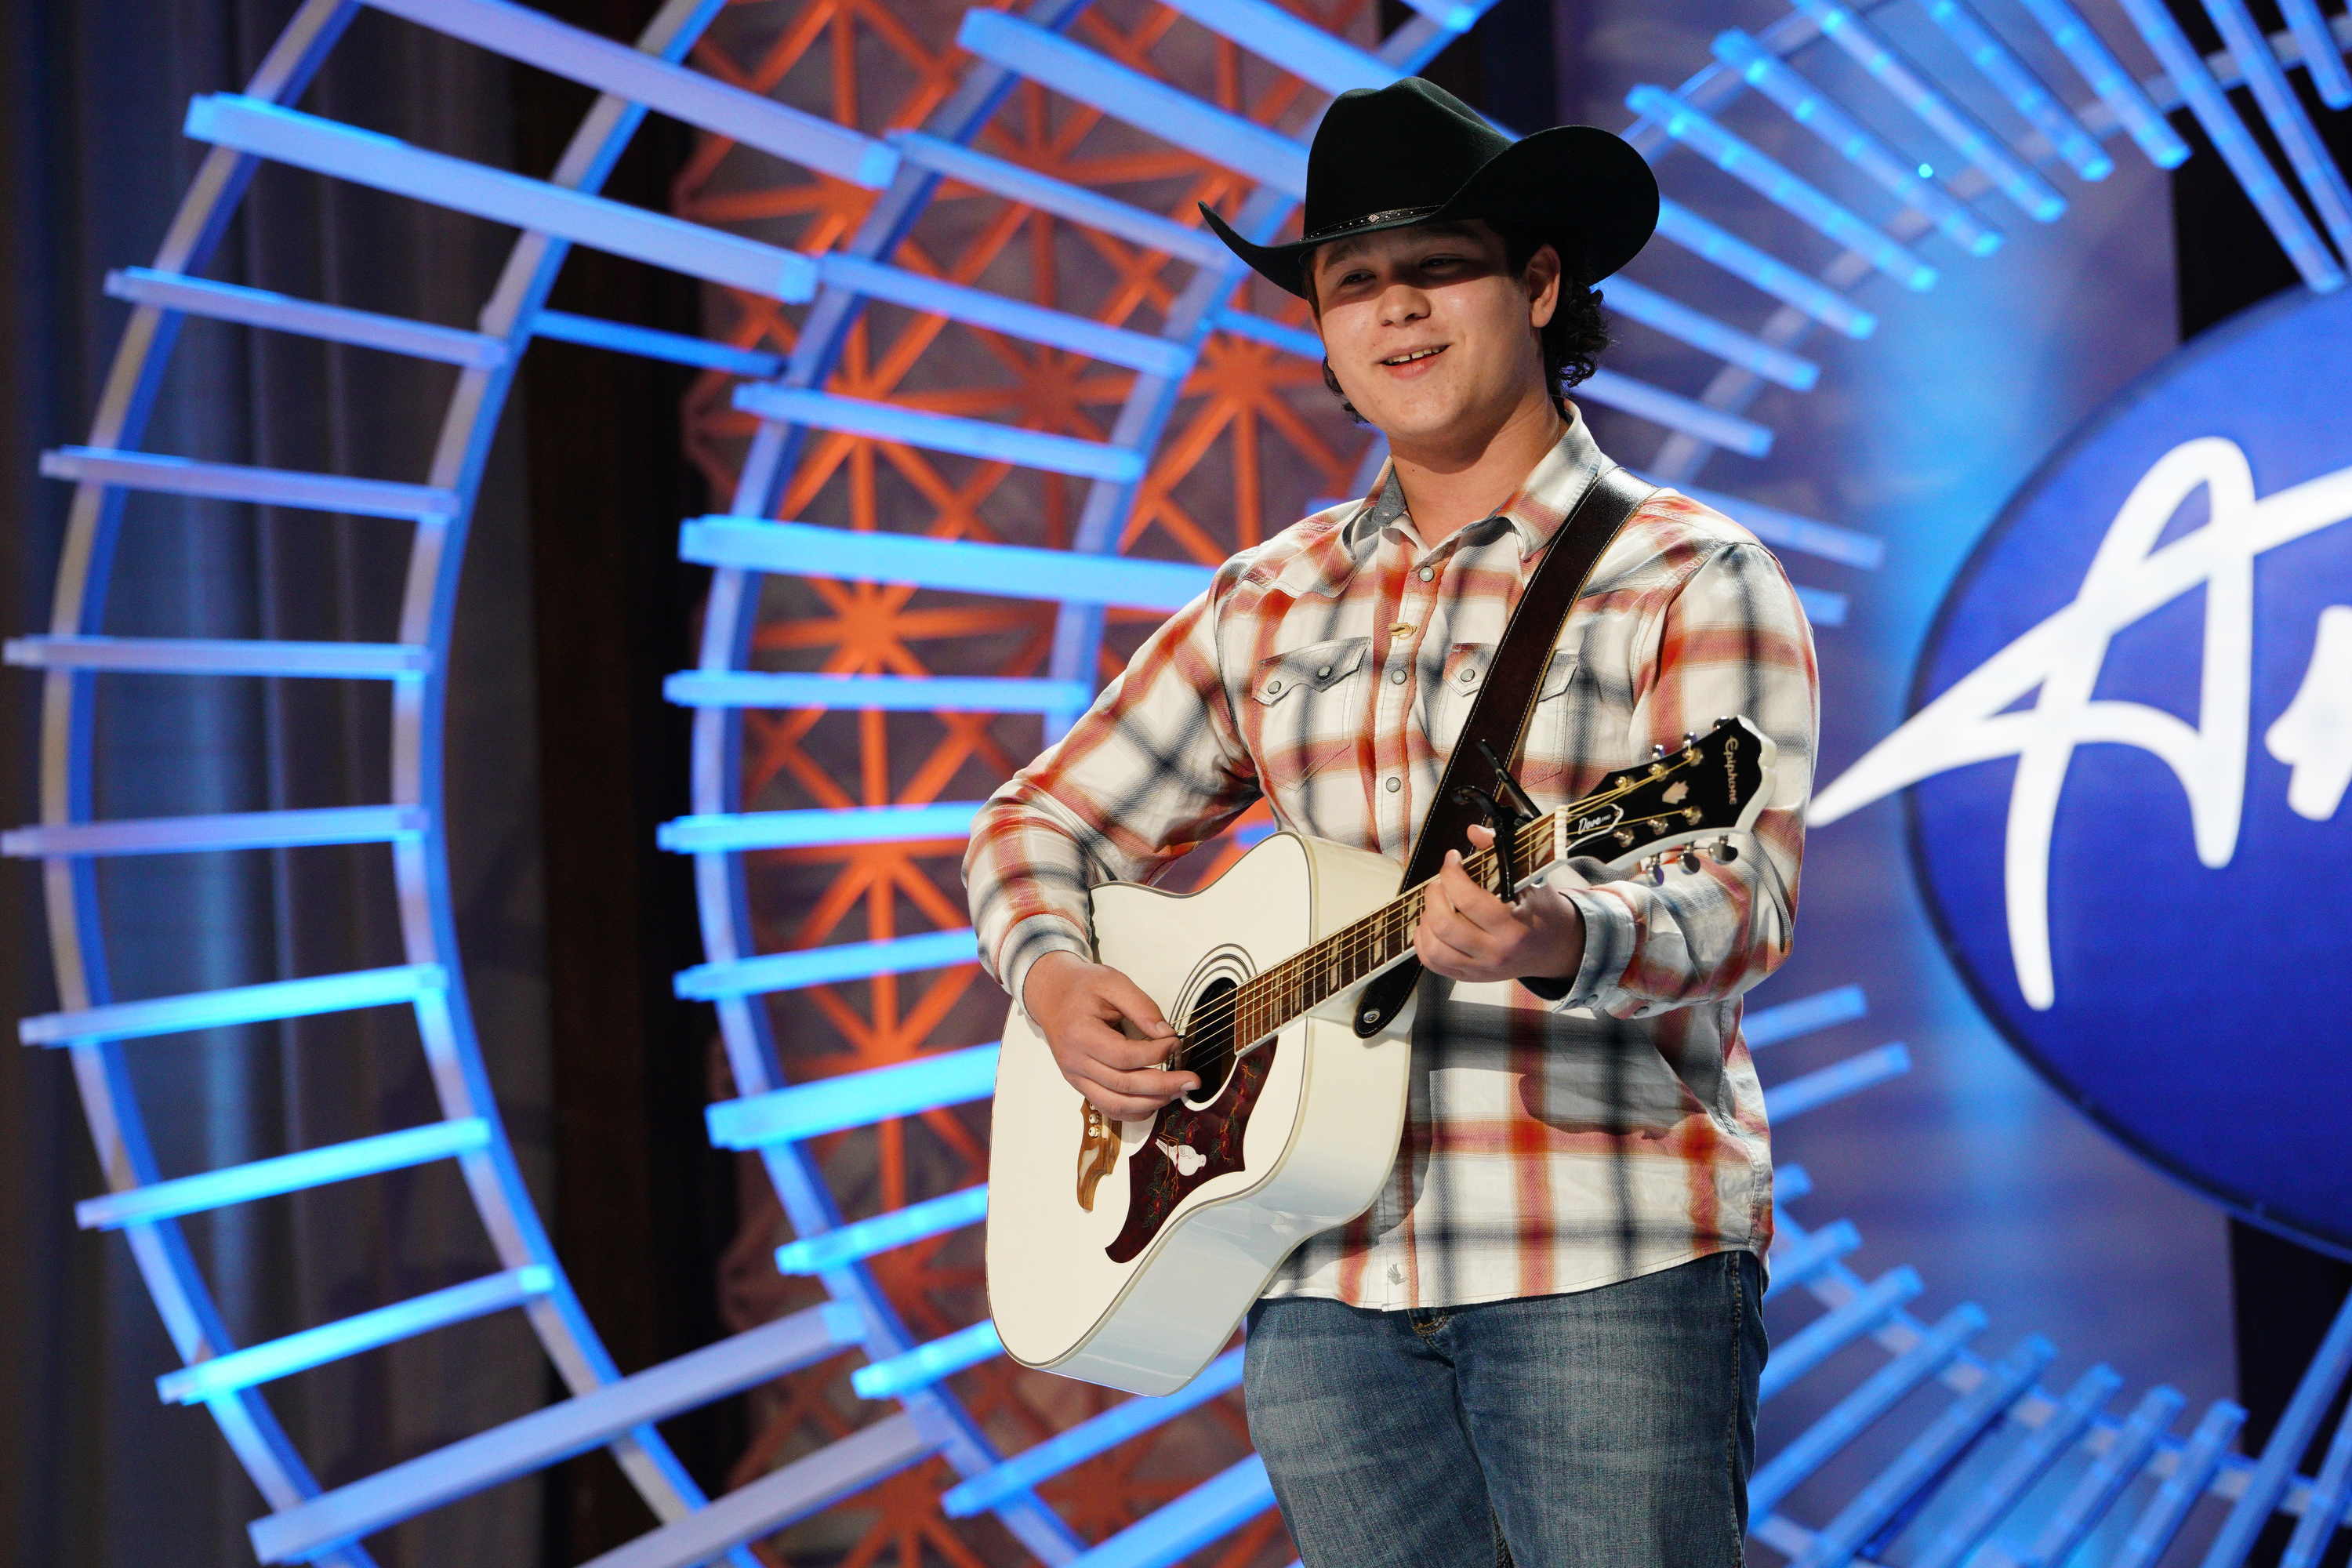 At Age 16, Caleb Kennedy Floors 'American Idol' Judges With Original Song